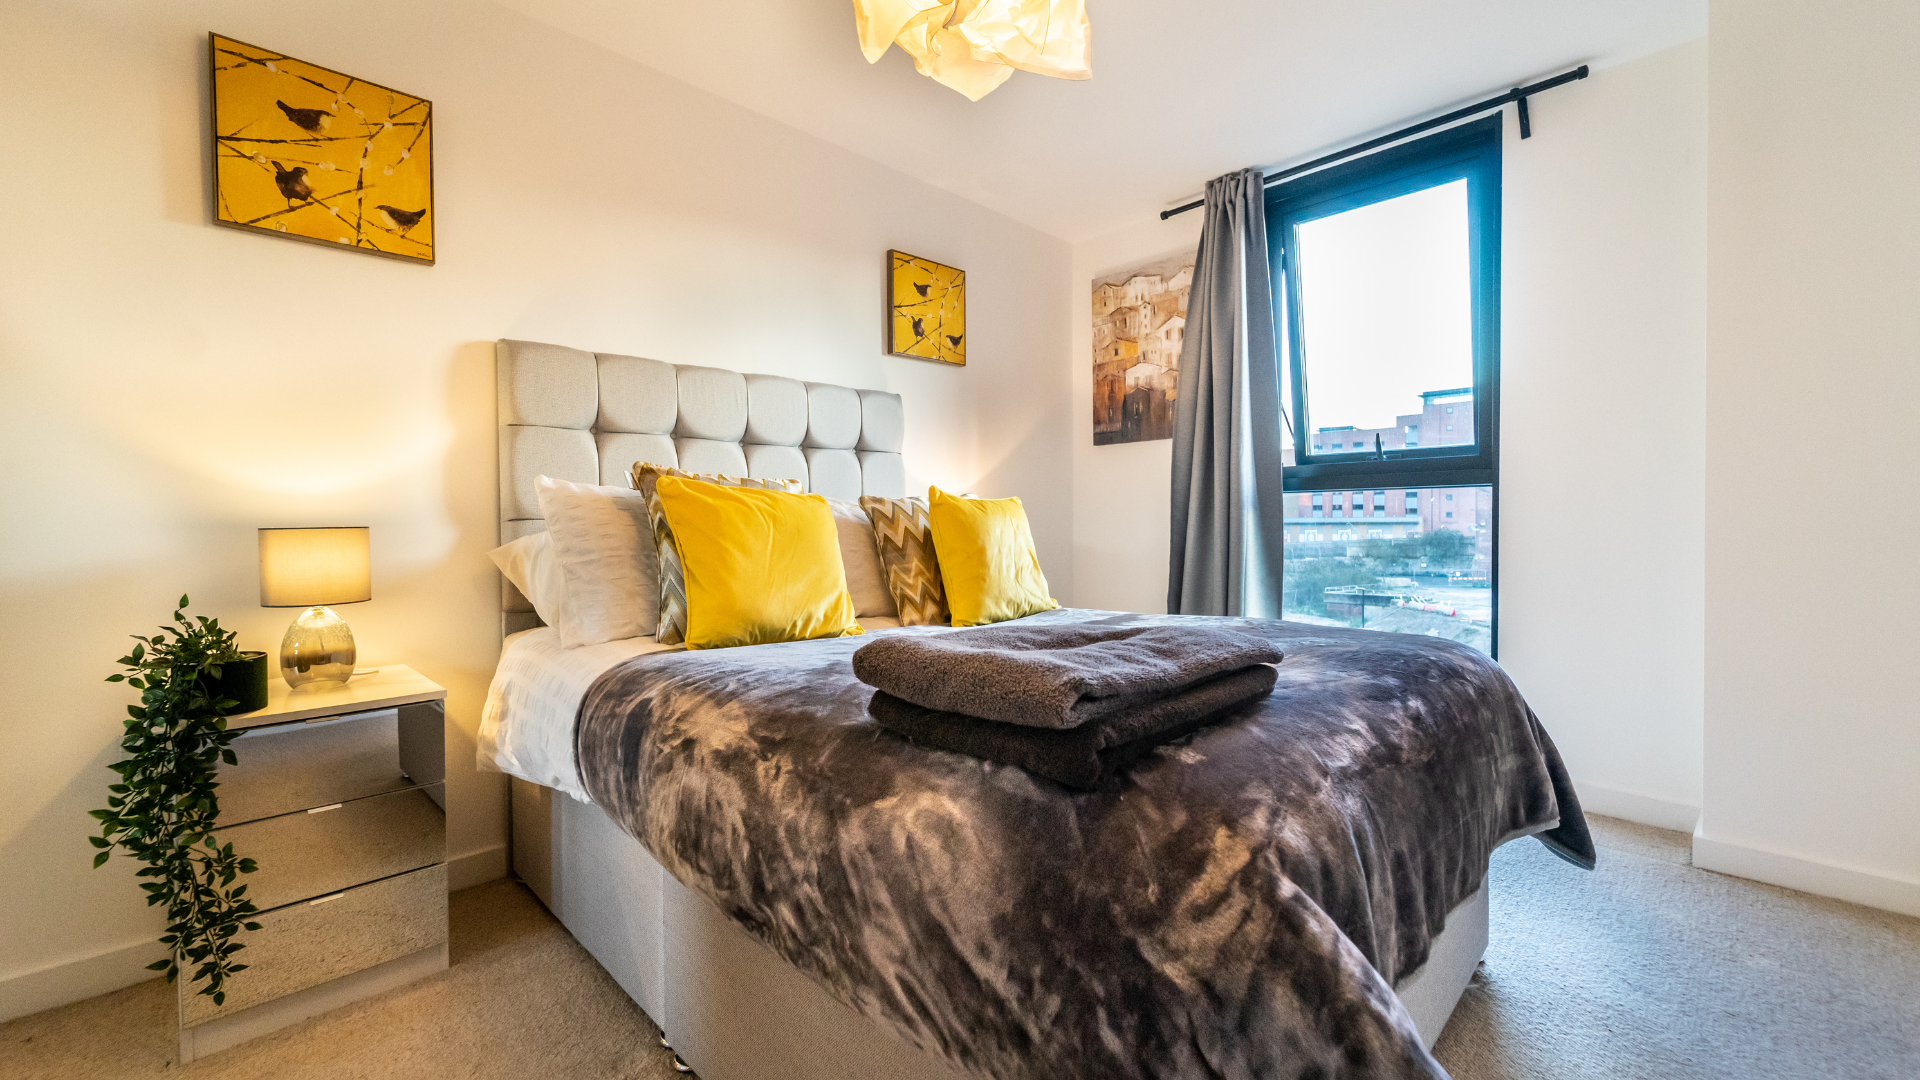 Comfortable bed at Quarter Blonk Street Apartments, Centre, Sheffield - Citybase Apartments